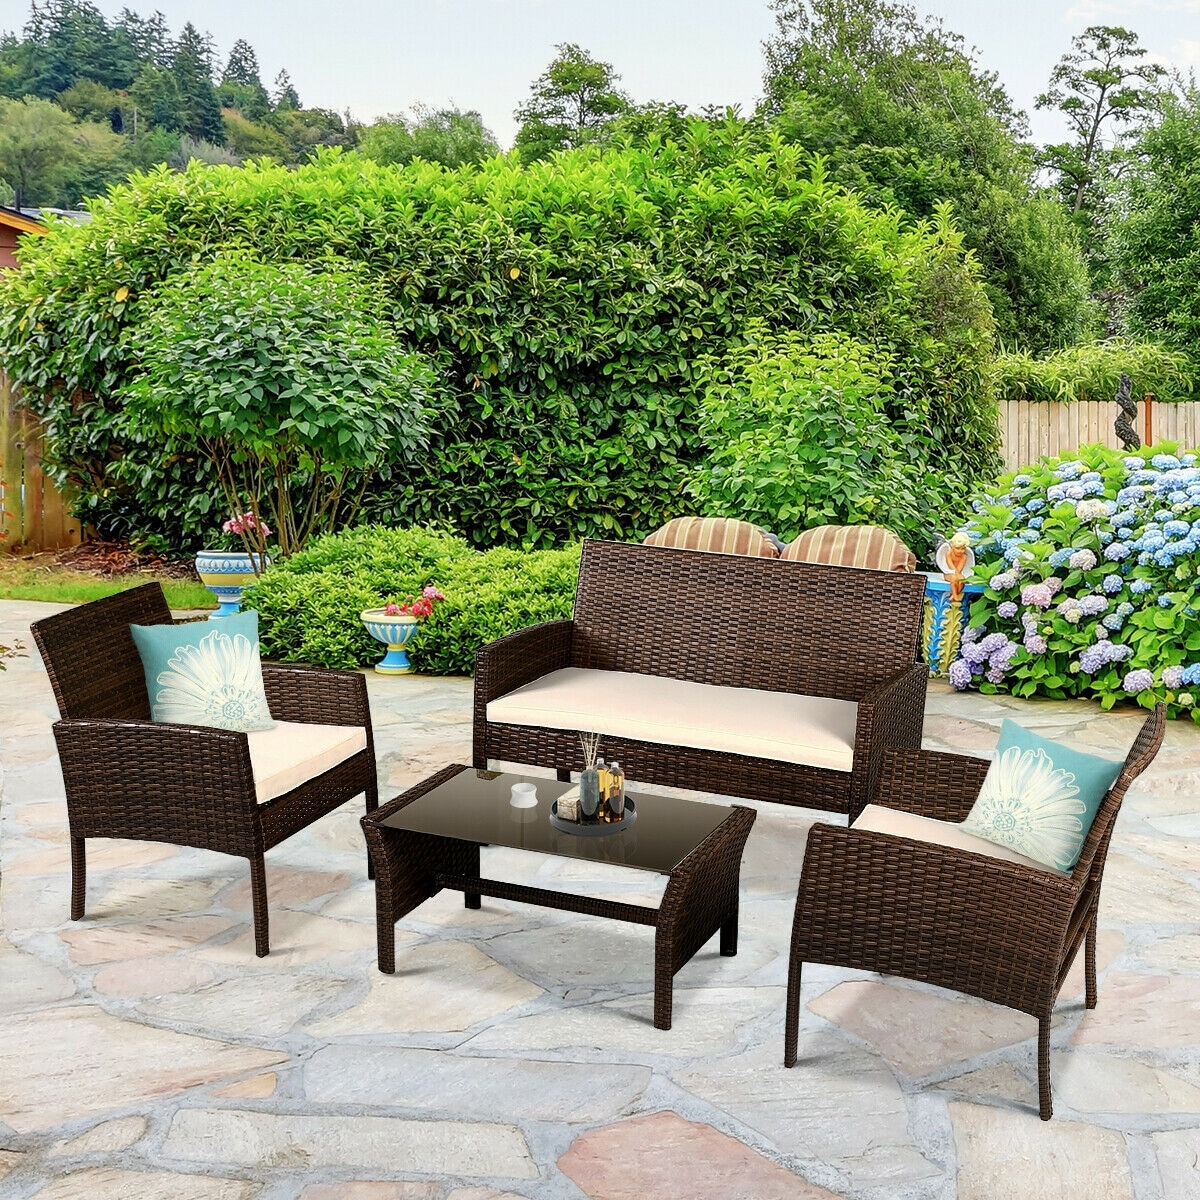 Patio Furniture Wicker Rattan Sofa Set